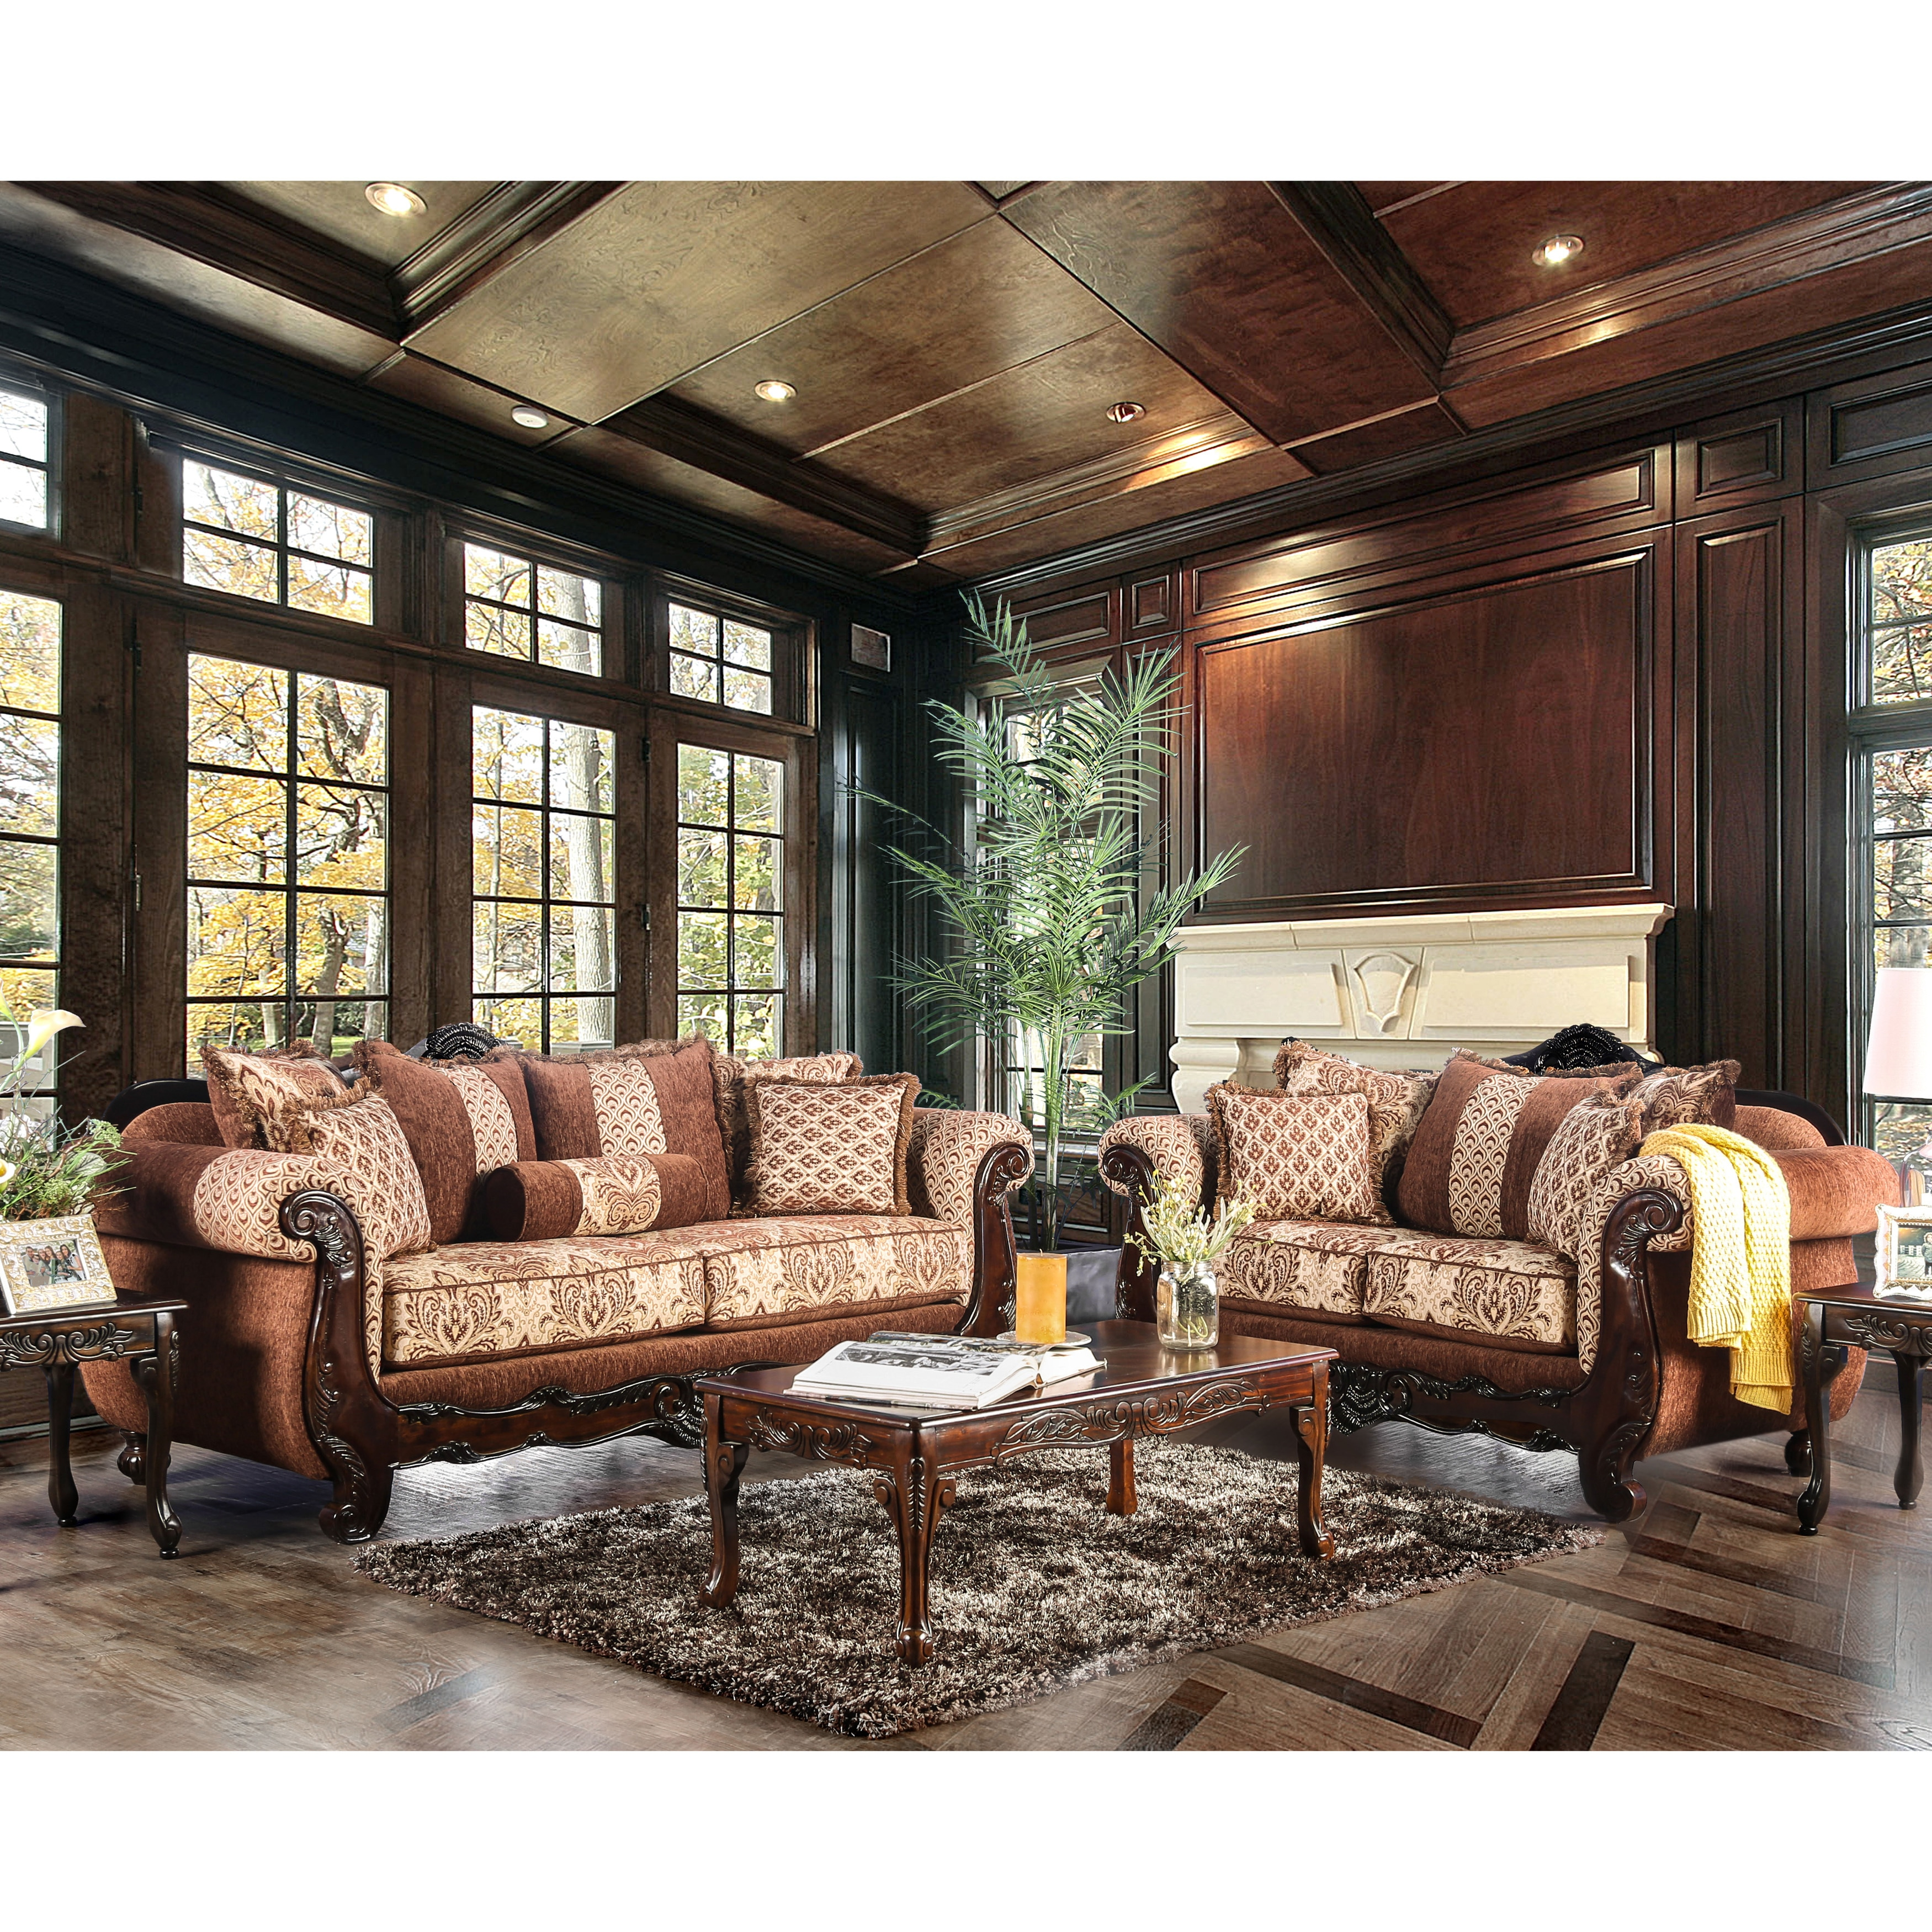 Furniture Of America Leticia Traditional 2 Piece Brown Damask Sofa Set    Free Shipping Today   Overstock.com   24355643